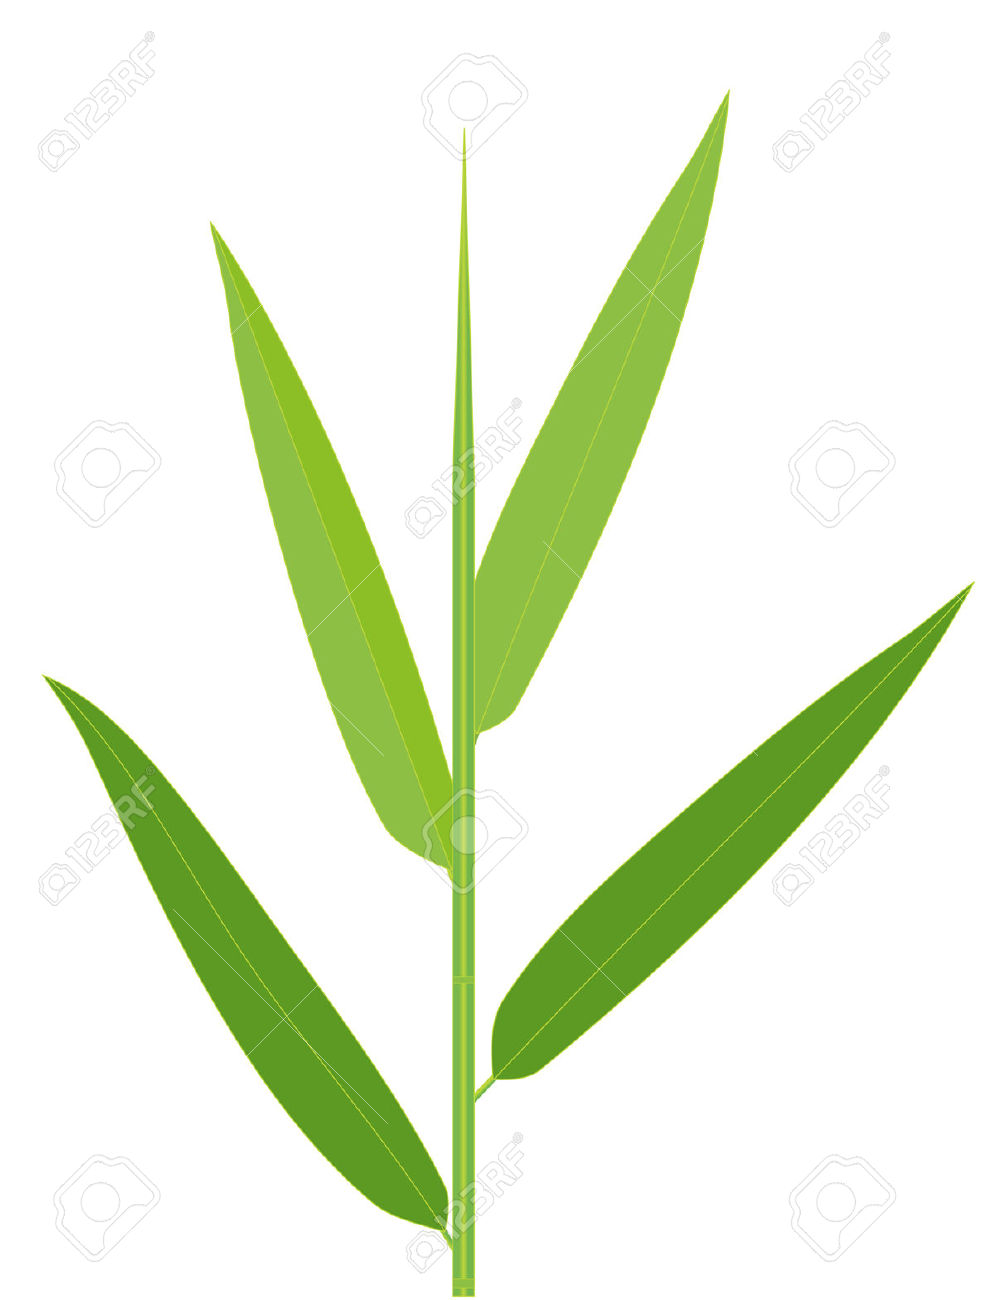 992x1300 Vector Illustration Of Bamboo Leaves Isolated On White Royalty